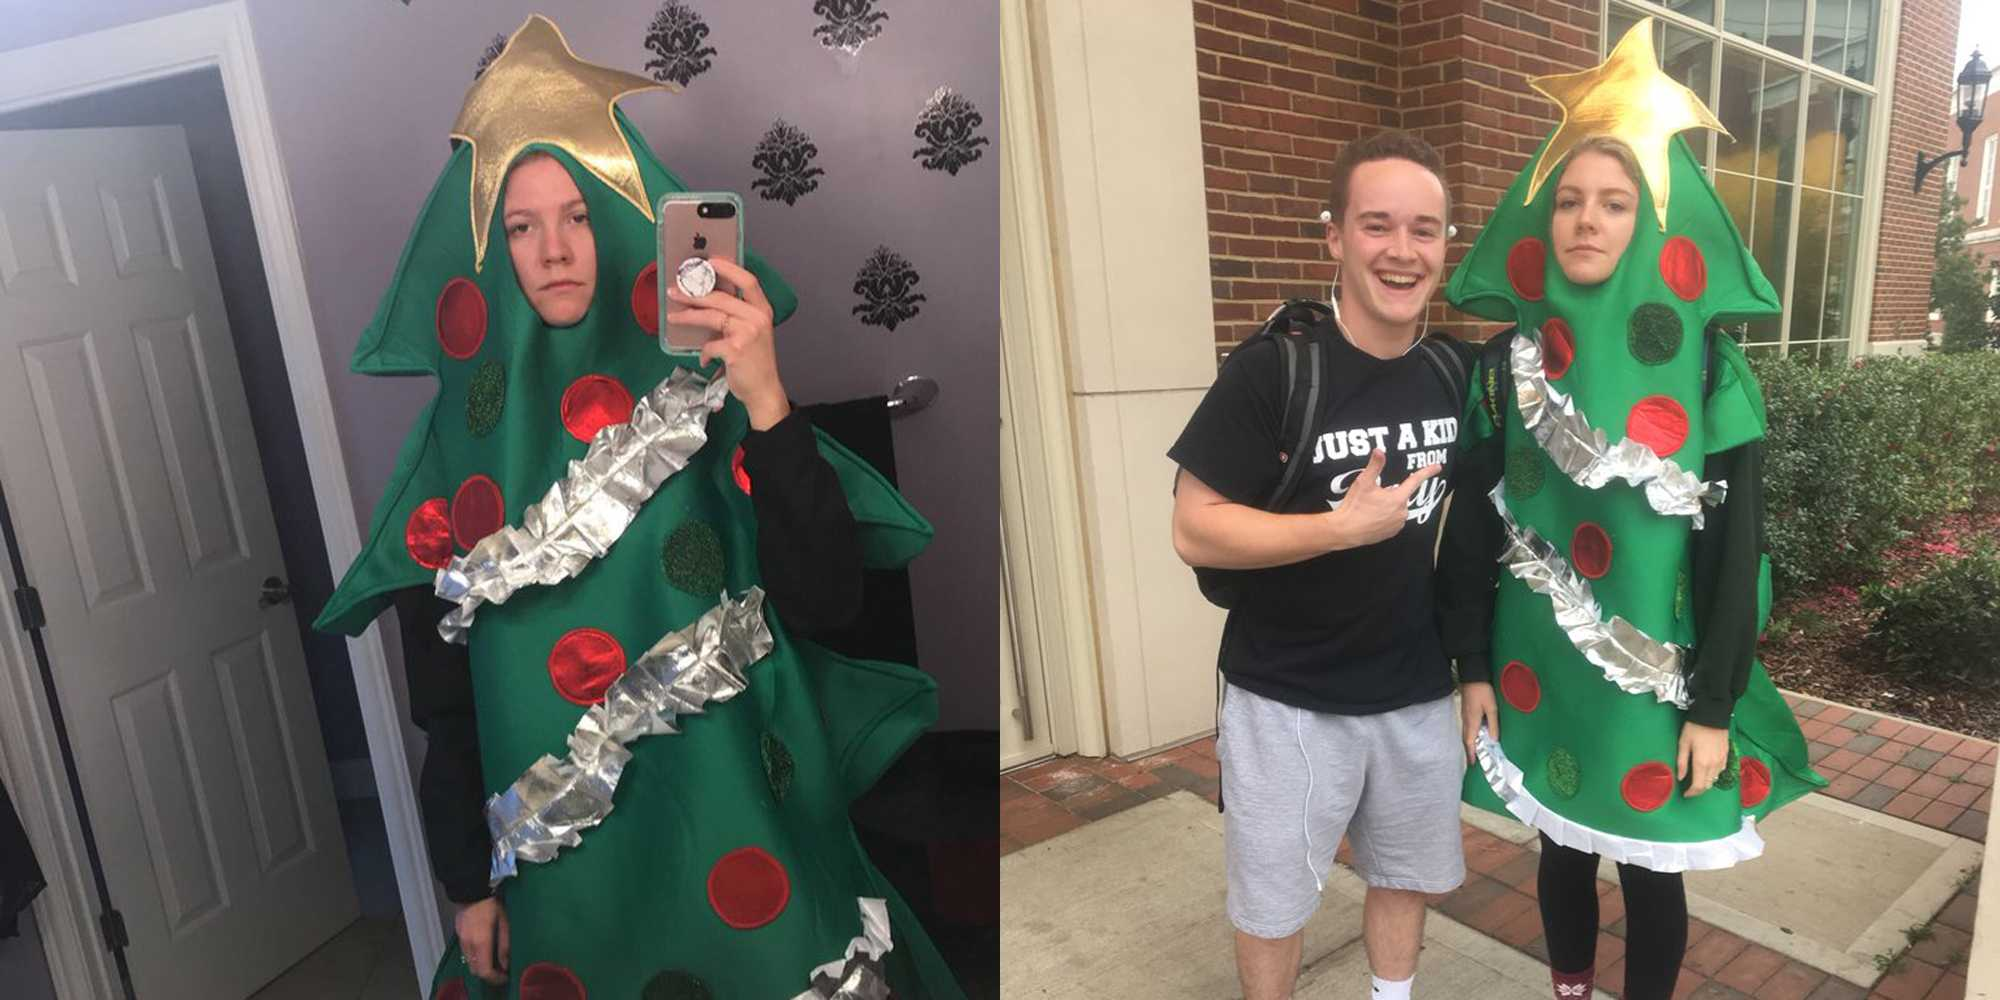 This College Student Has to Wear a Christmas Tree Costume for the Rest of the Semester